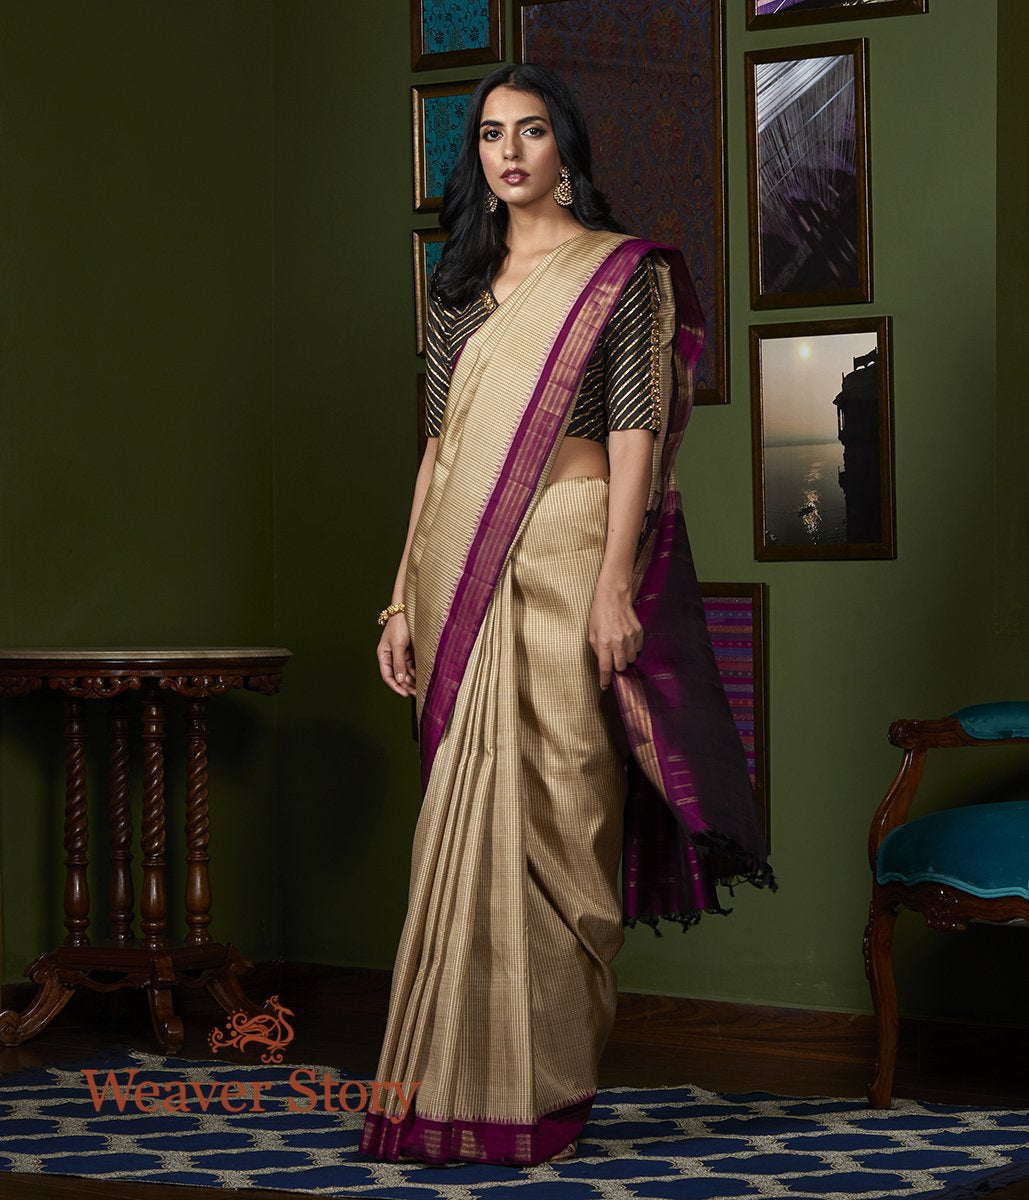 Handwoven Beige Ikat Kanjivaram Saree with Purple Border